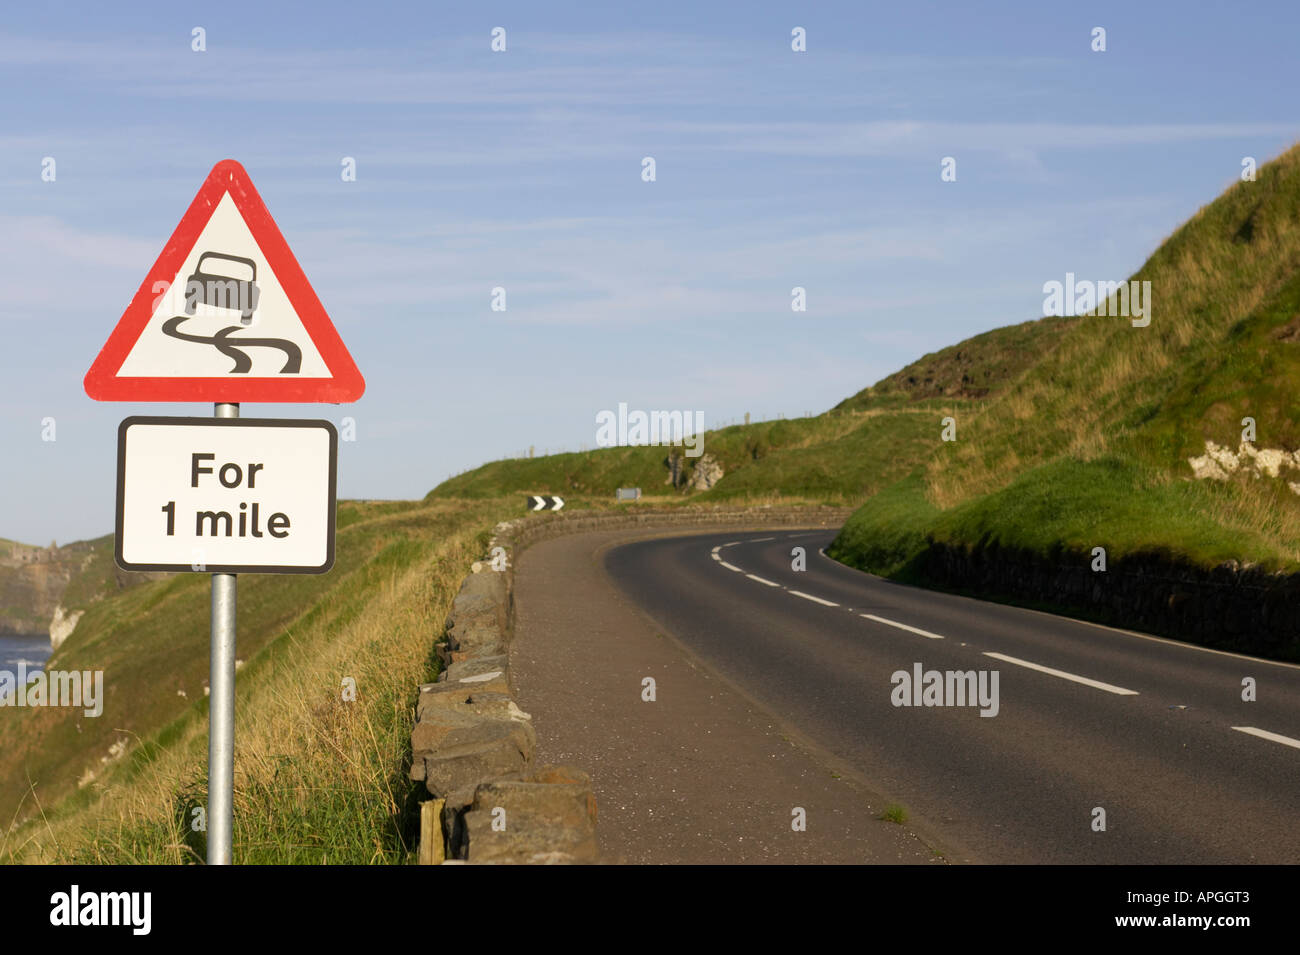 triangular red lined slippery road for one mile warning road sign on the A2 coast road at bend near Dunluce Castle - Stock Image